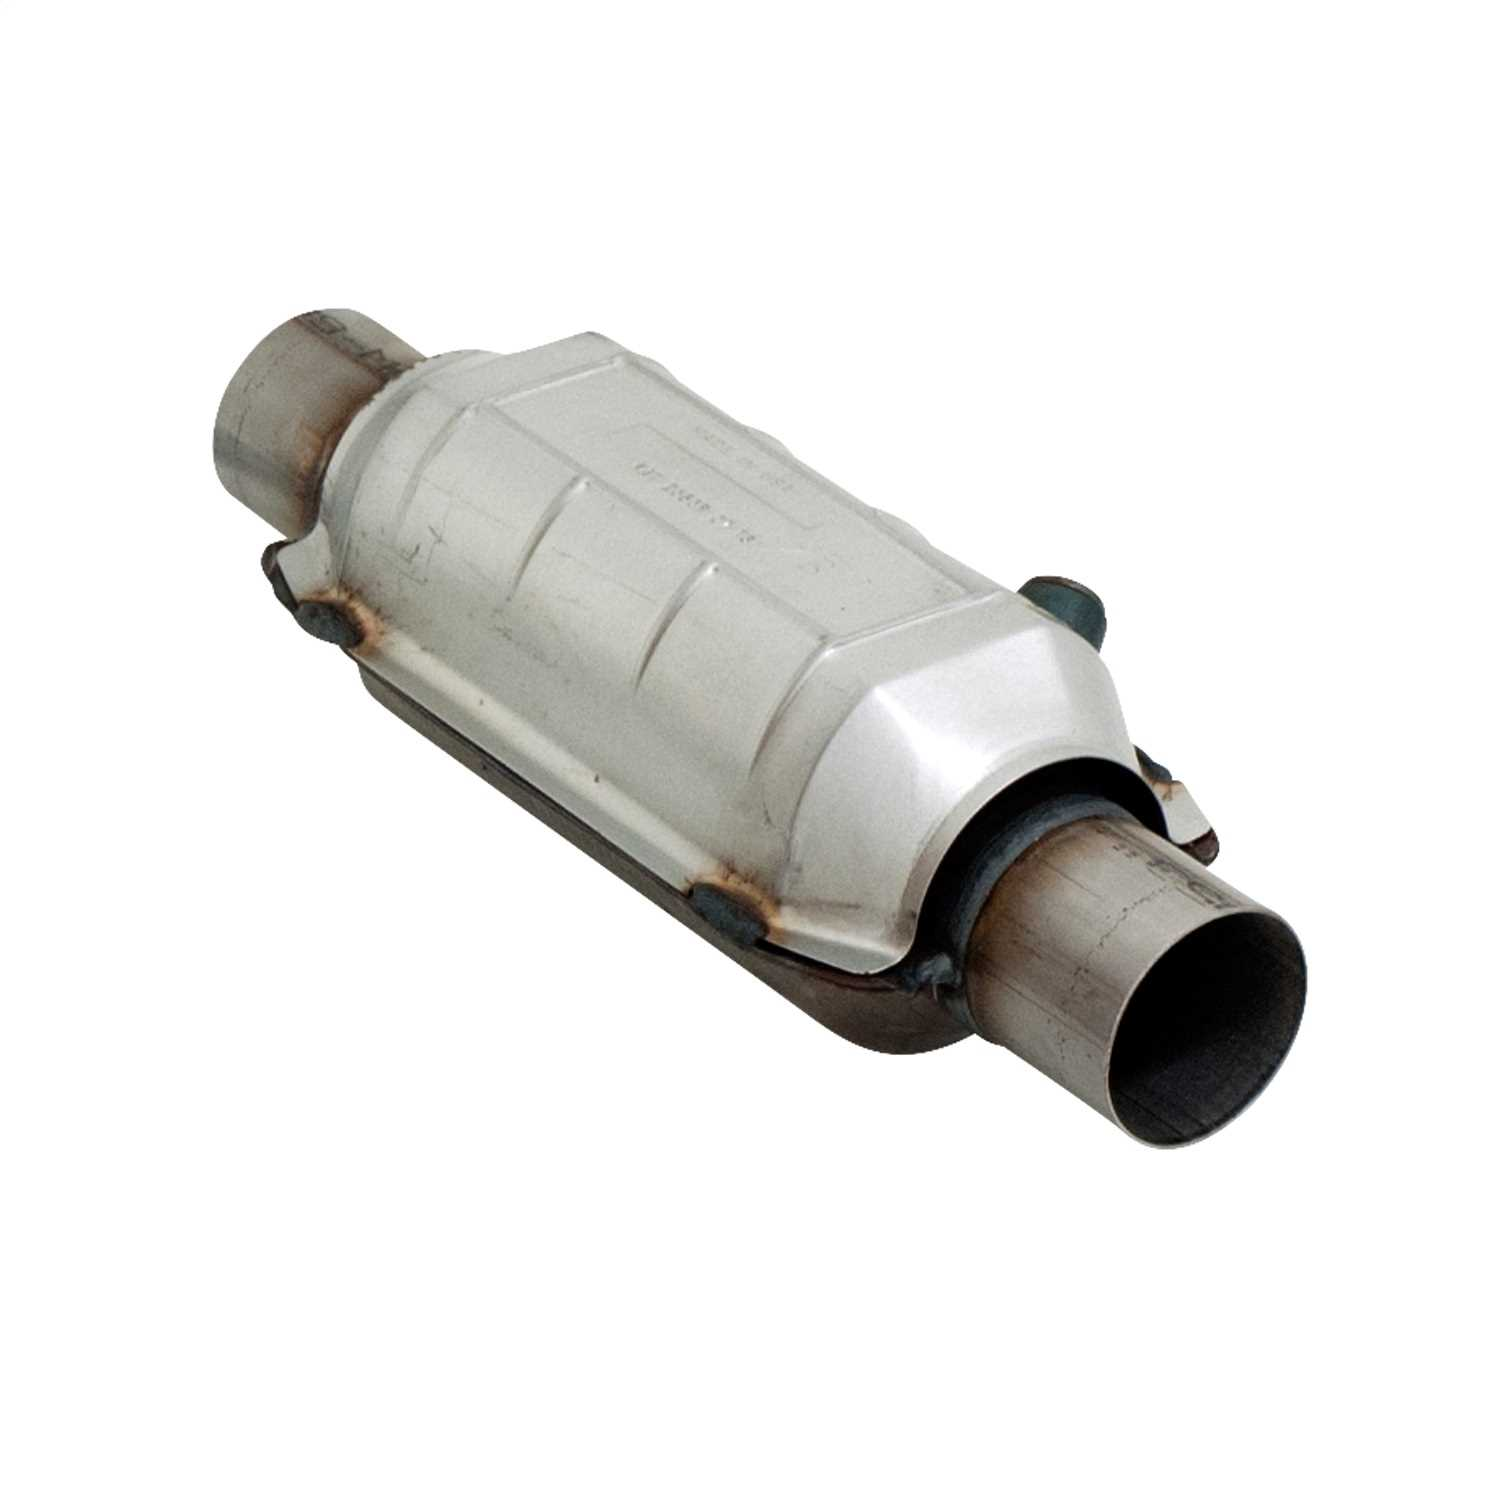 2821124 Flowmaster 49 State Catalytic Converters Universal Catalytic Converter